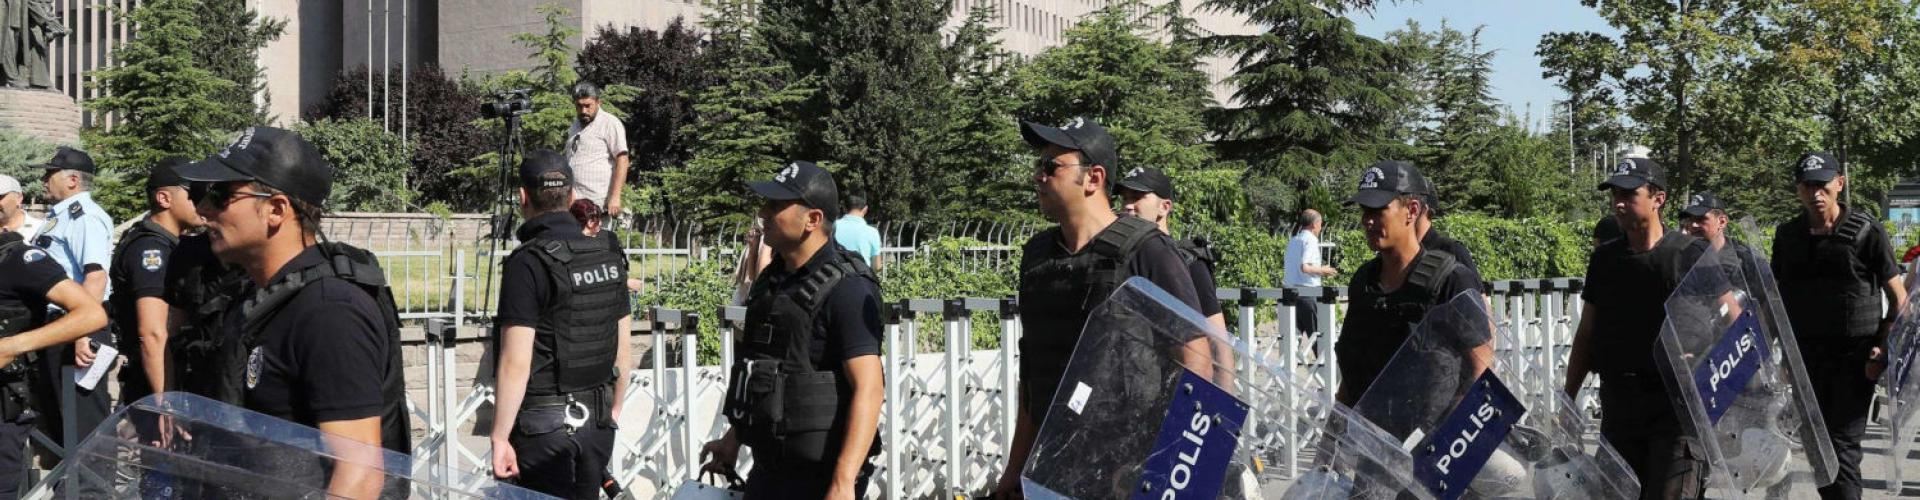 "Turkish riot police officers arrive with their shields in front of Ankara's courthouse on July 7, 2017, prior to the trial of the co-leader of the pro-Kurdish Peoples Democratic Party (HDP) Selahattin Demirtas charged of ""insulting"" a government official. / AFP PHOTO / ADEM ALTAN"